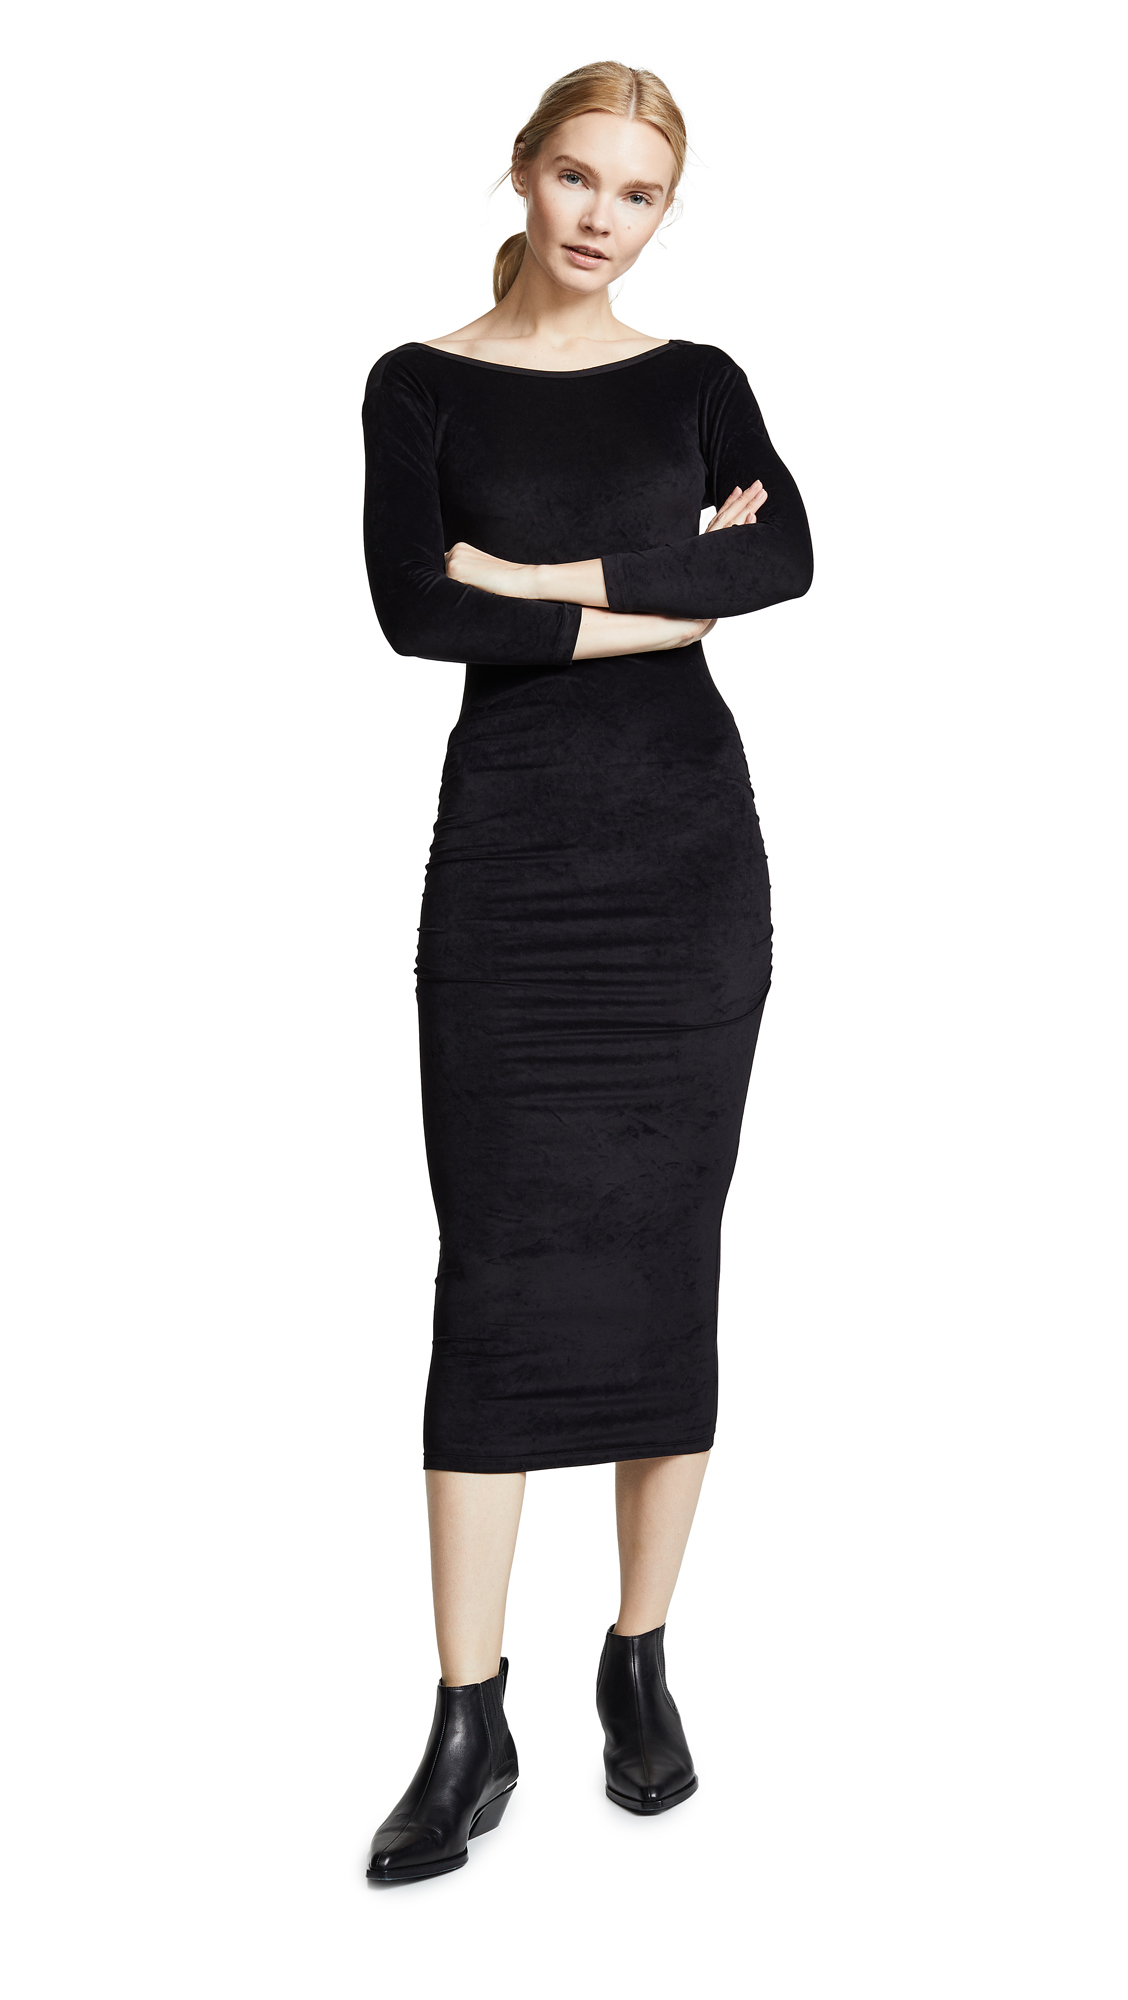 James Perse Fitted Low Back Dress - 30% Off Sale